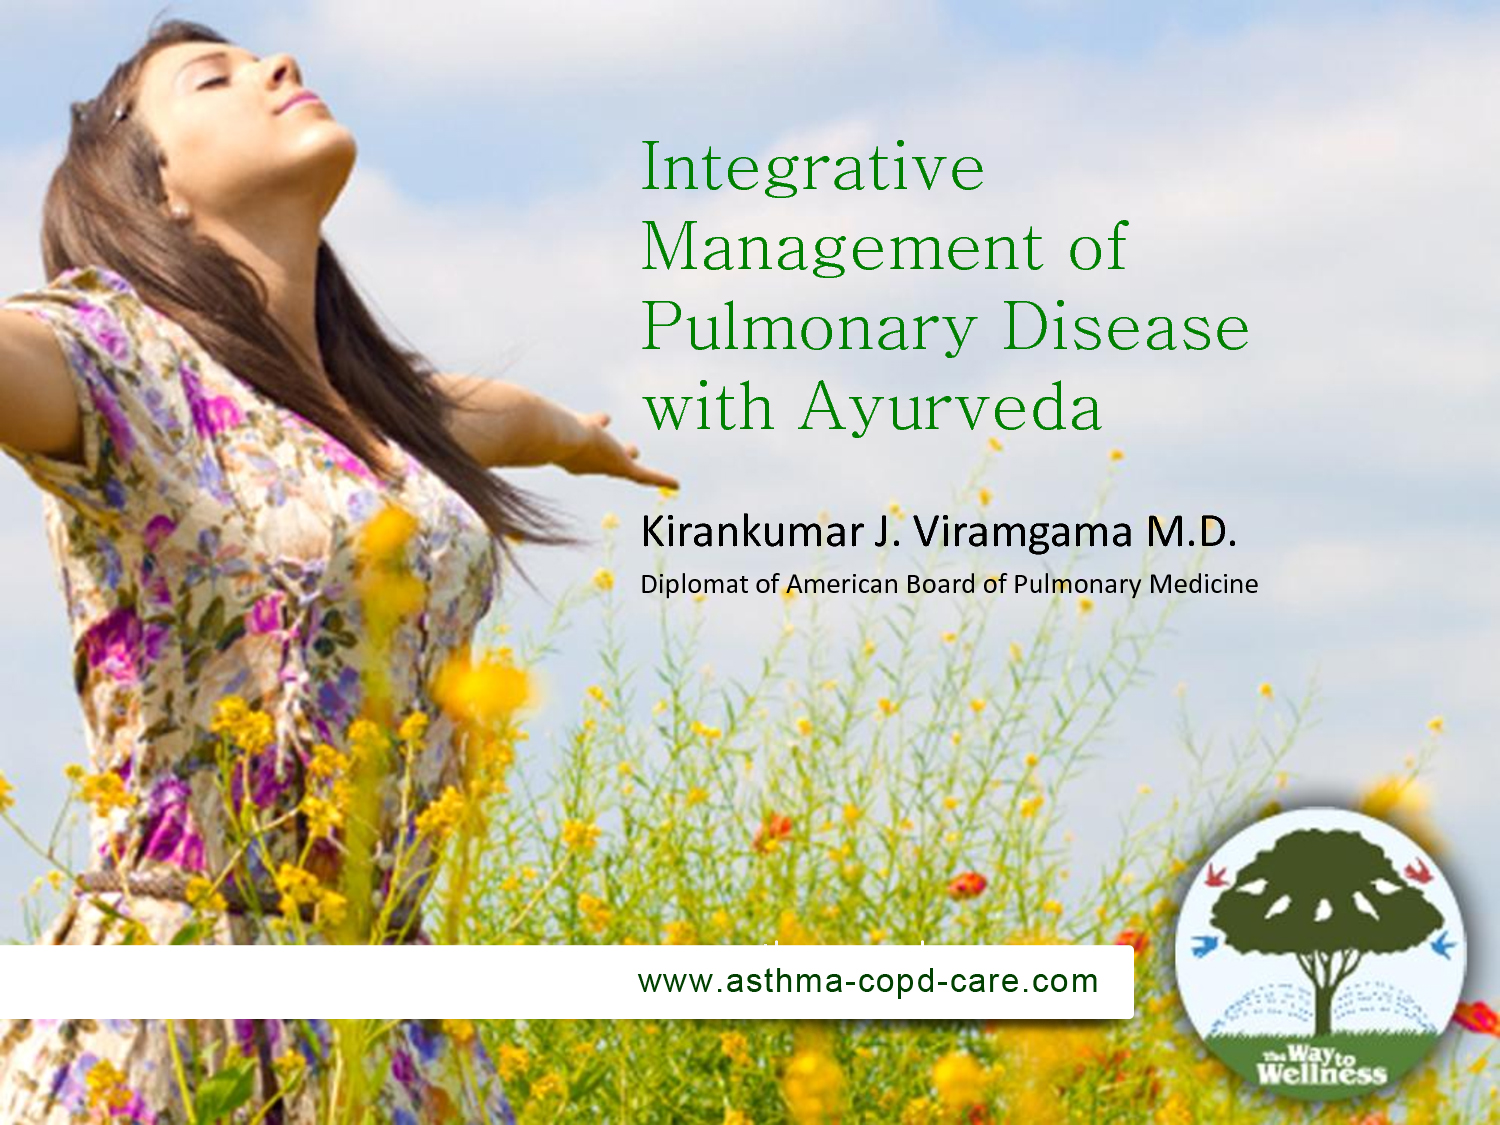 Integrative Medical Treatment & Management Benefits in patients with Bronchial Asthma and Chronic Obstructive Pulmonary Disease